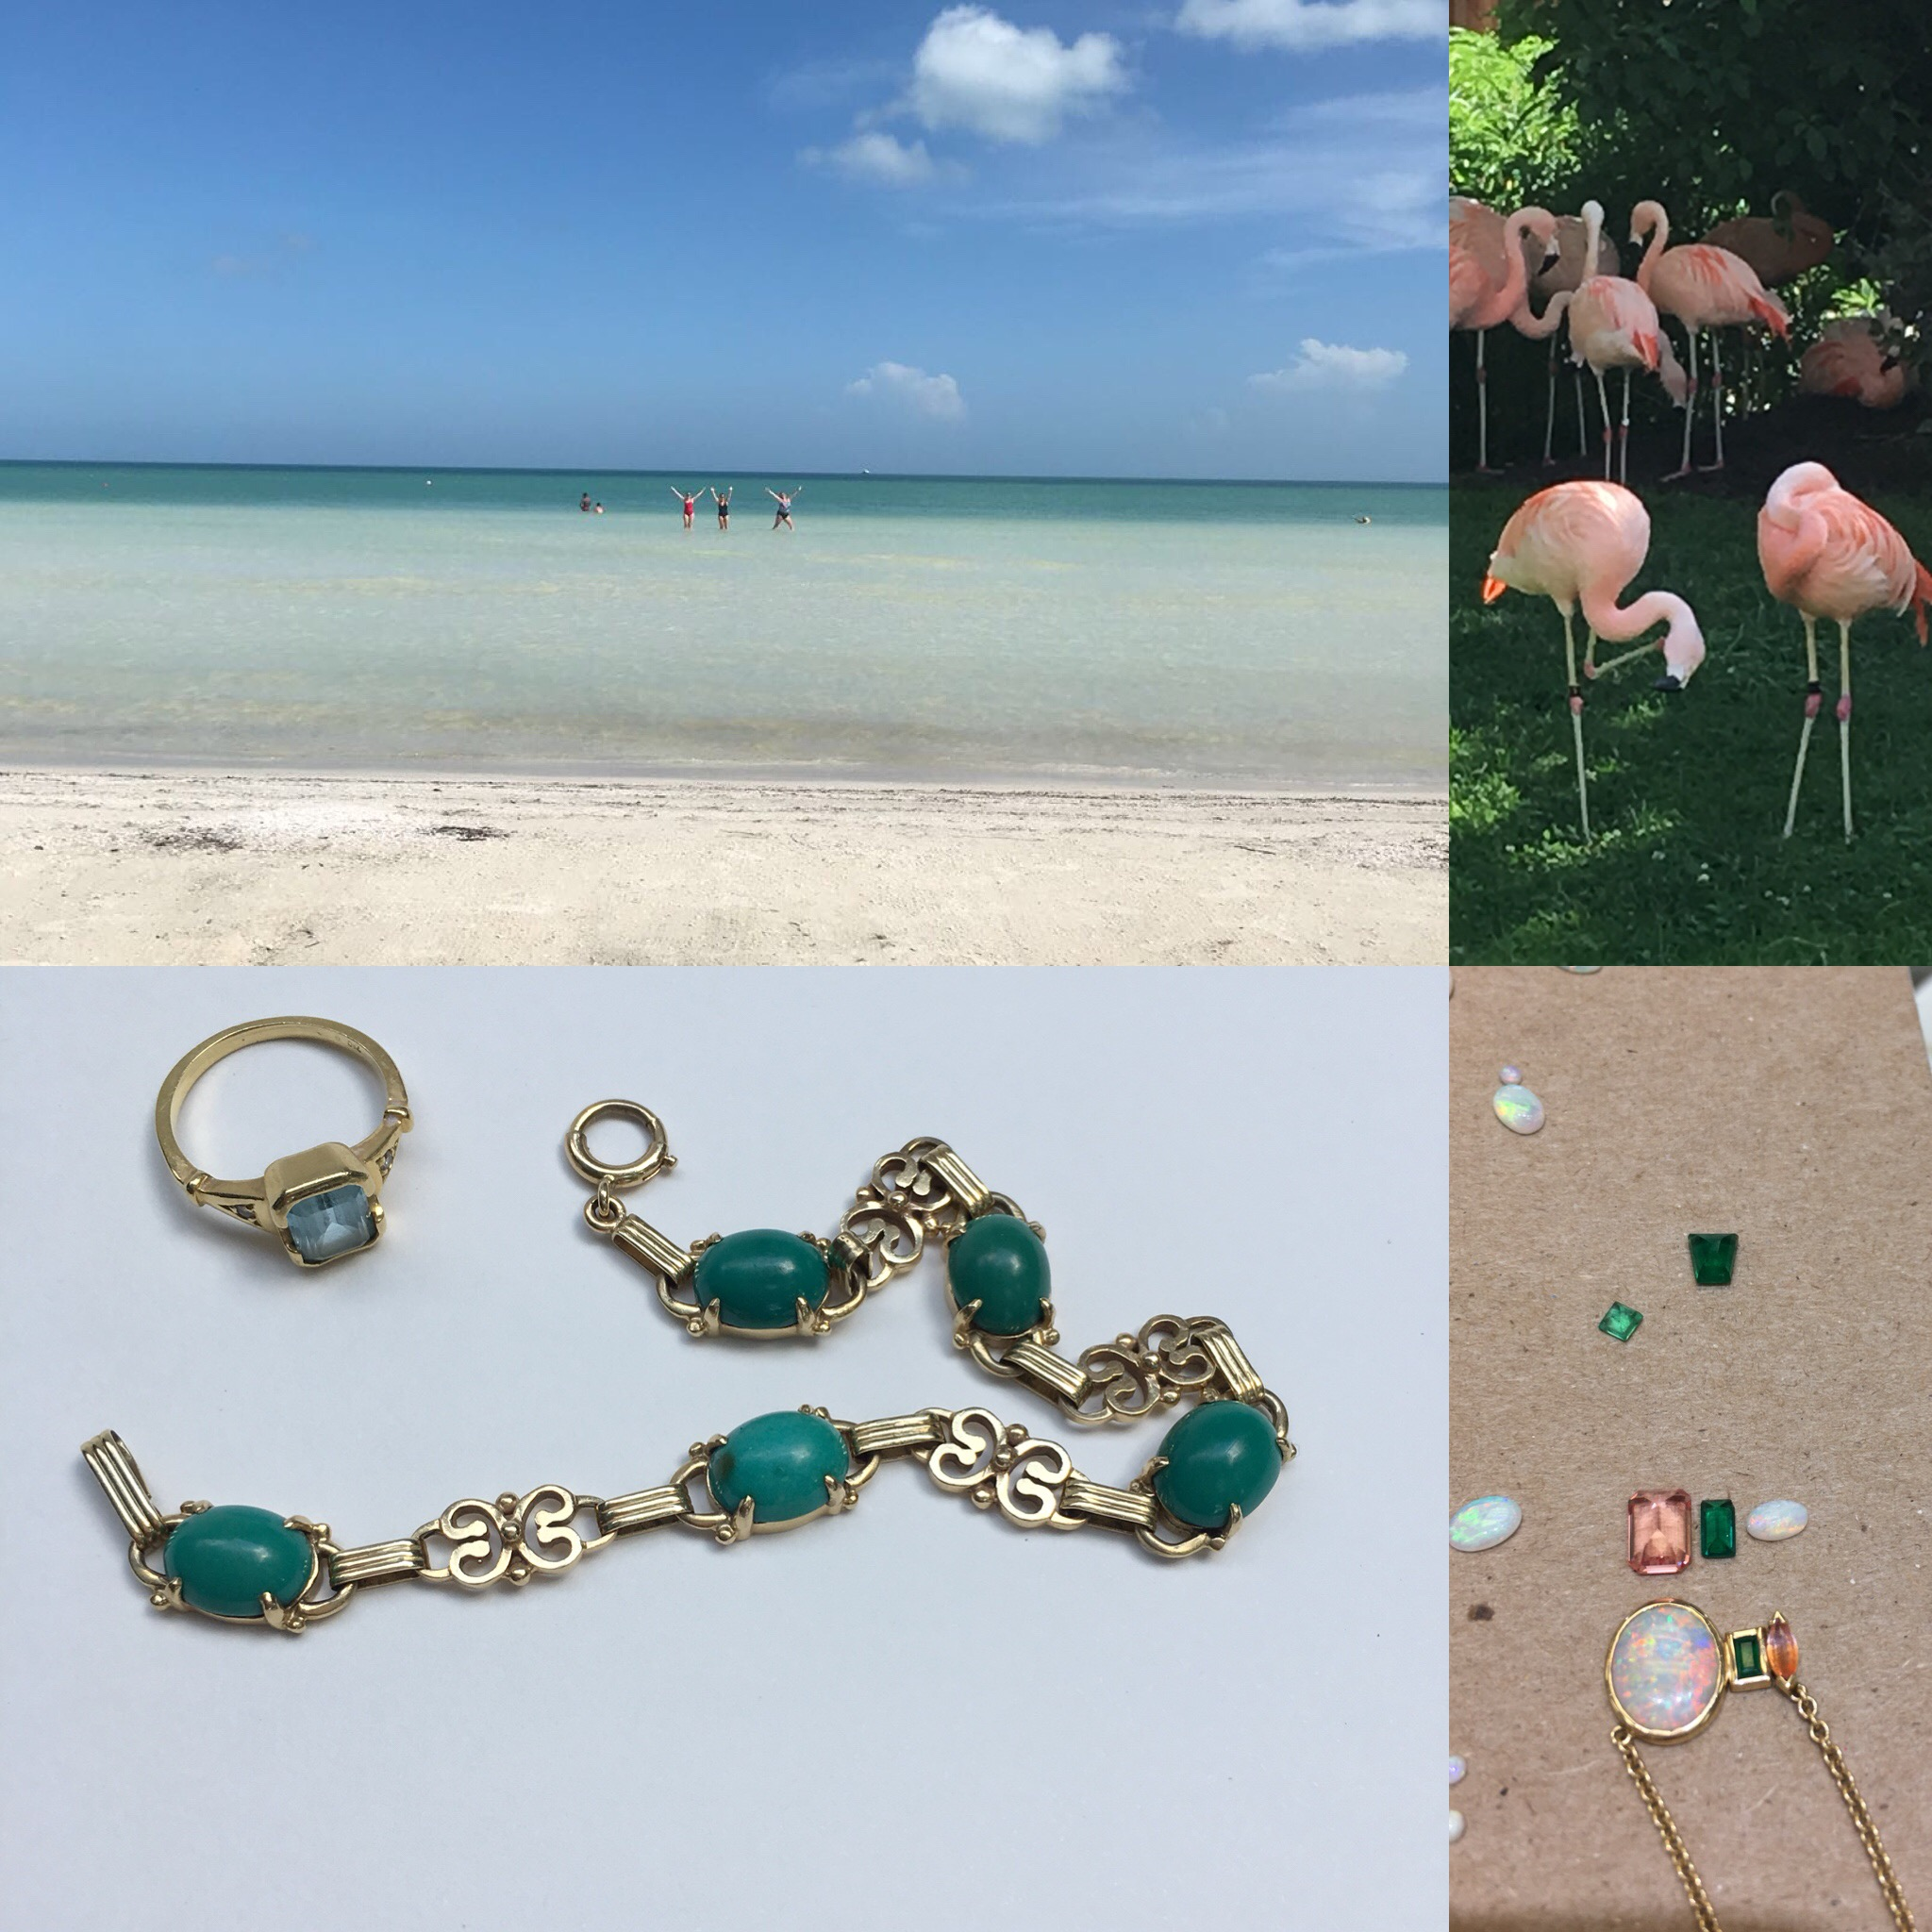 Style II - pinks and greens forever. gold pieces, a little playful and appropriate for vacations and everyday wear.